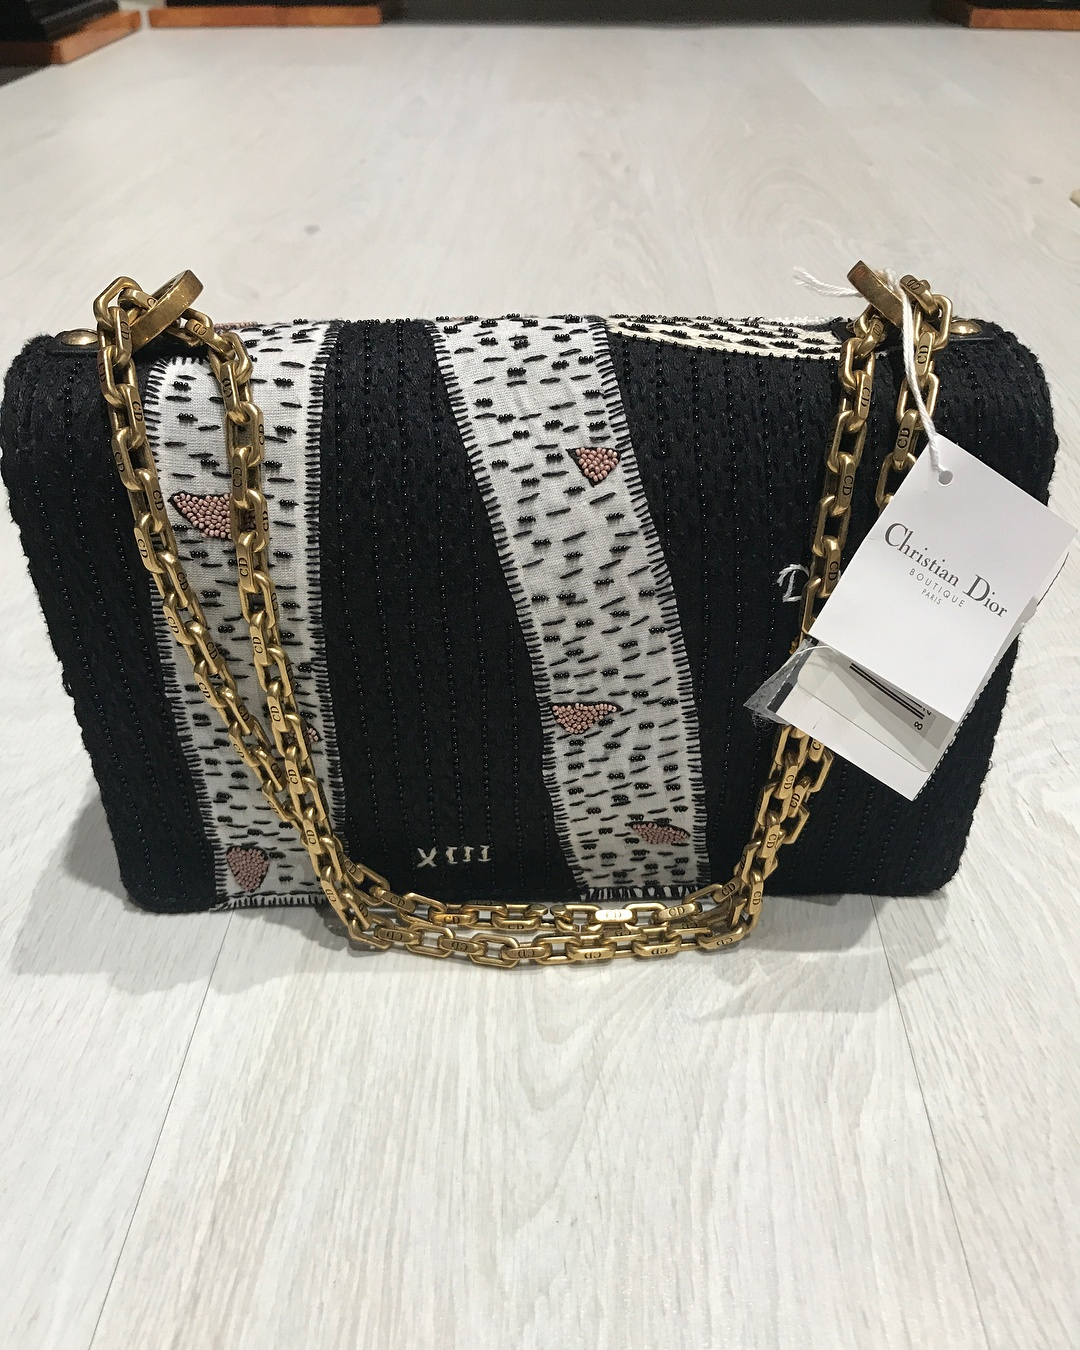 b4fa8eed239f How I can find a supplier of replica of branded bags and shoes in ...